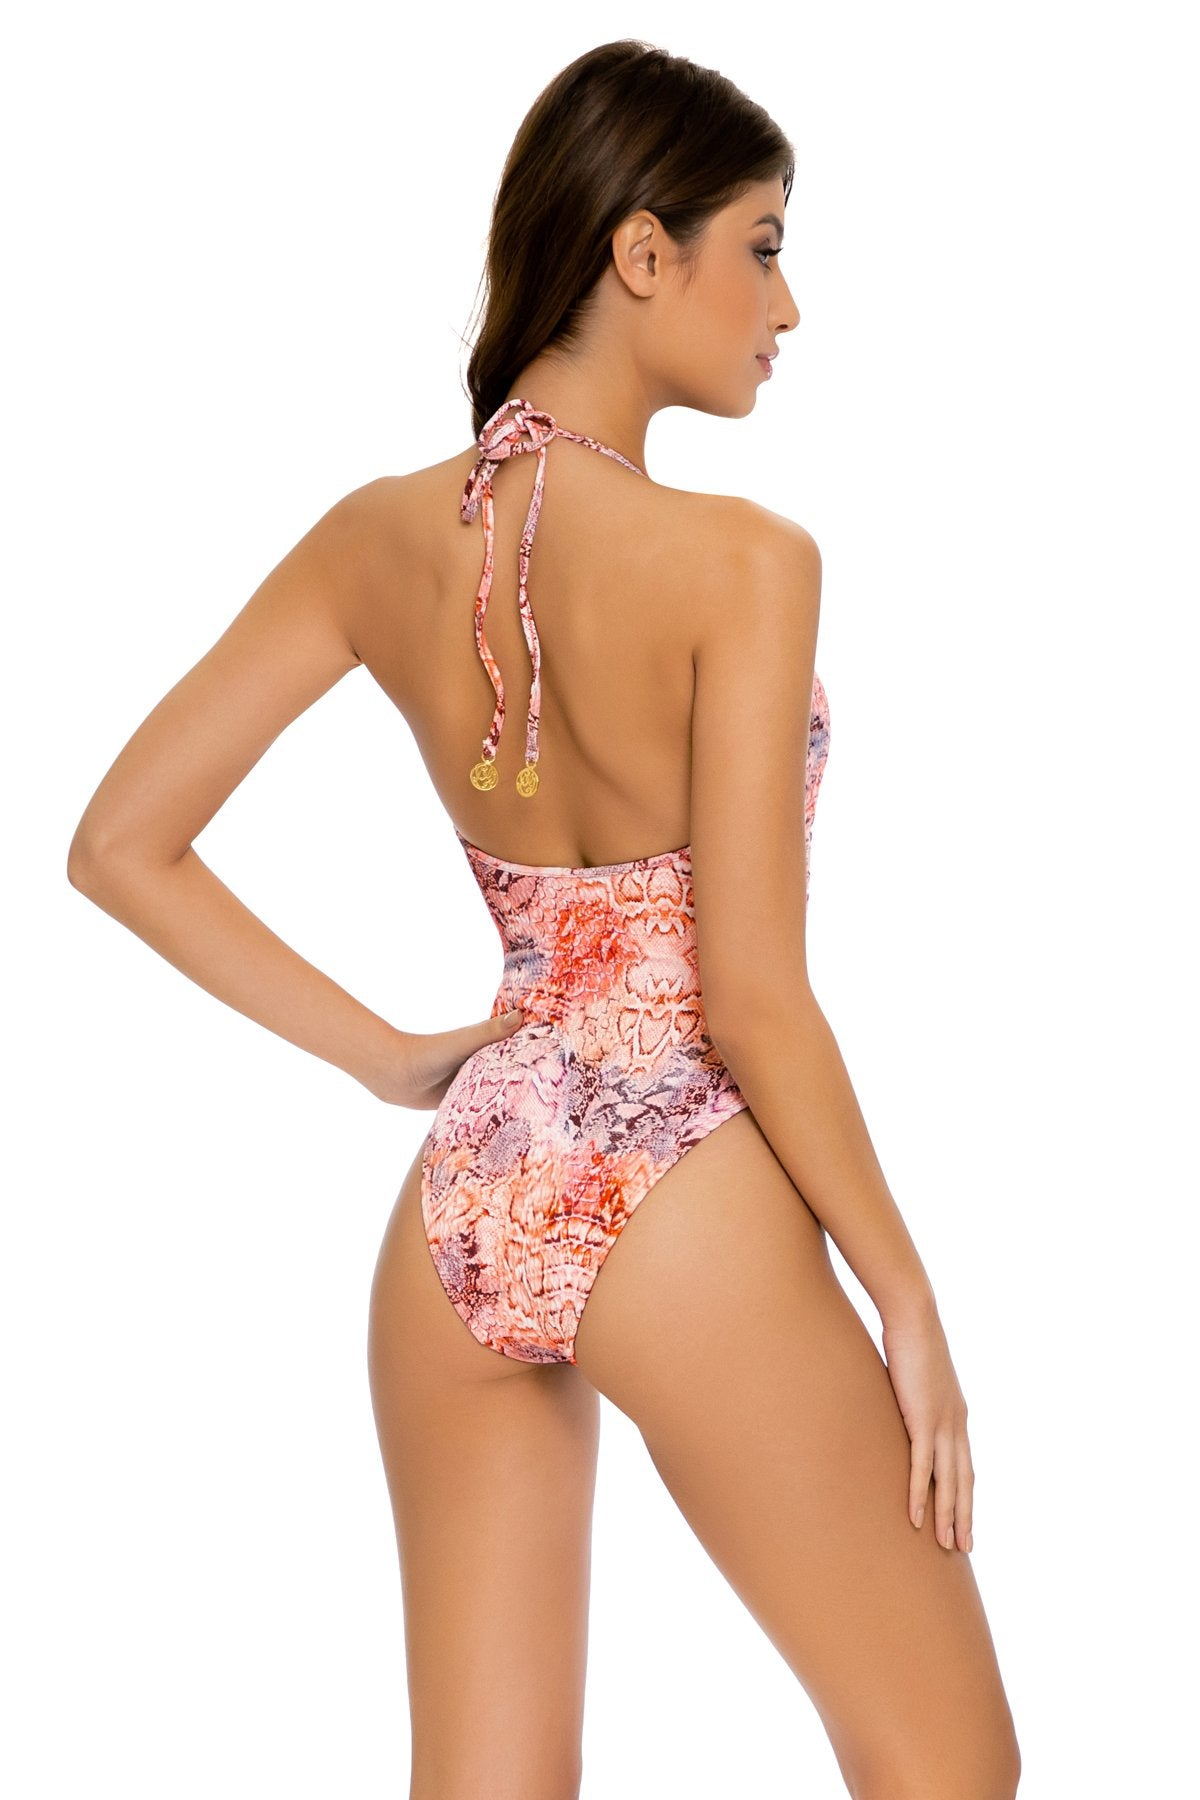 SKINS - One Piece Bodysuit • Coral Snake